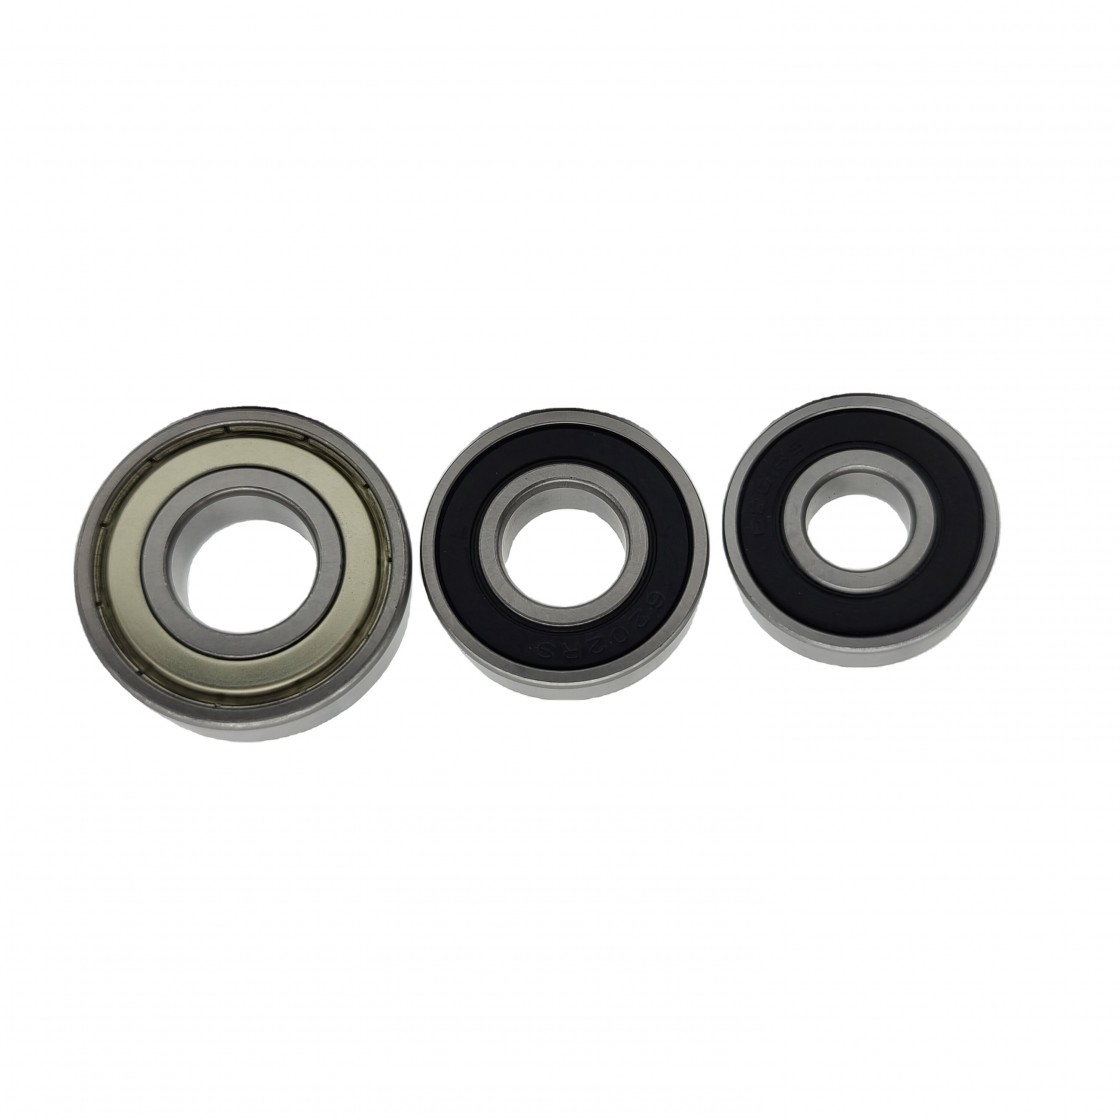 Skate and Skateboard Used Miniature 608zz Deep Groove Ball Bearings